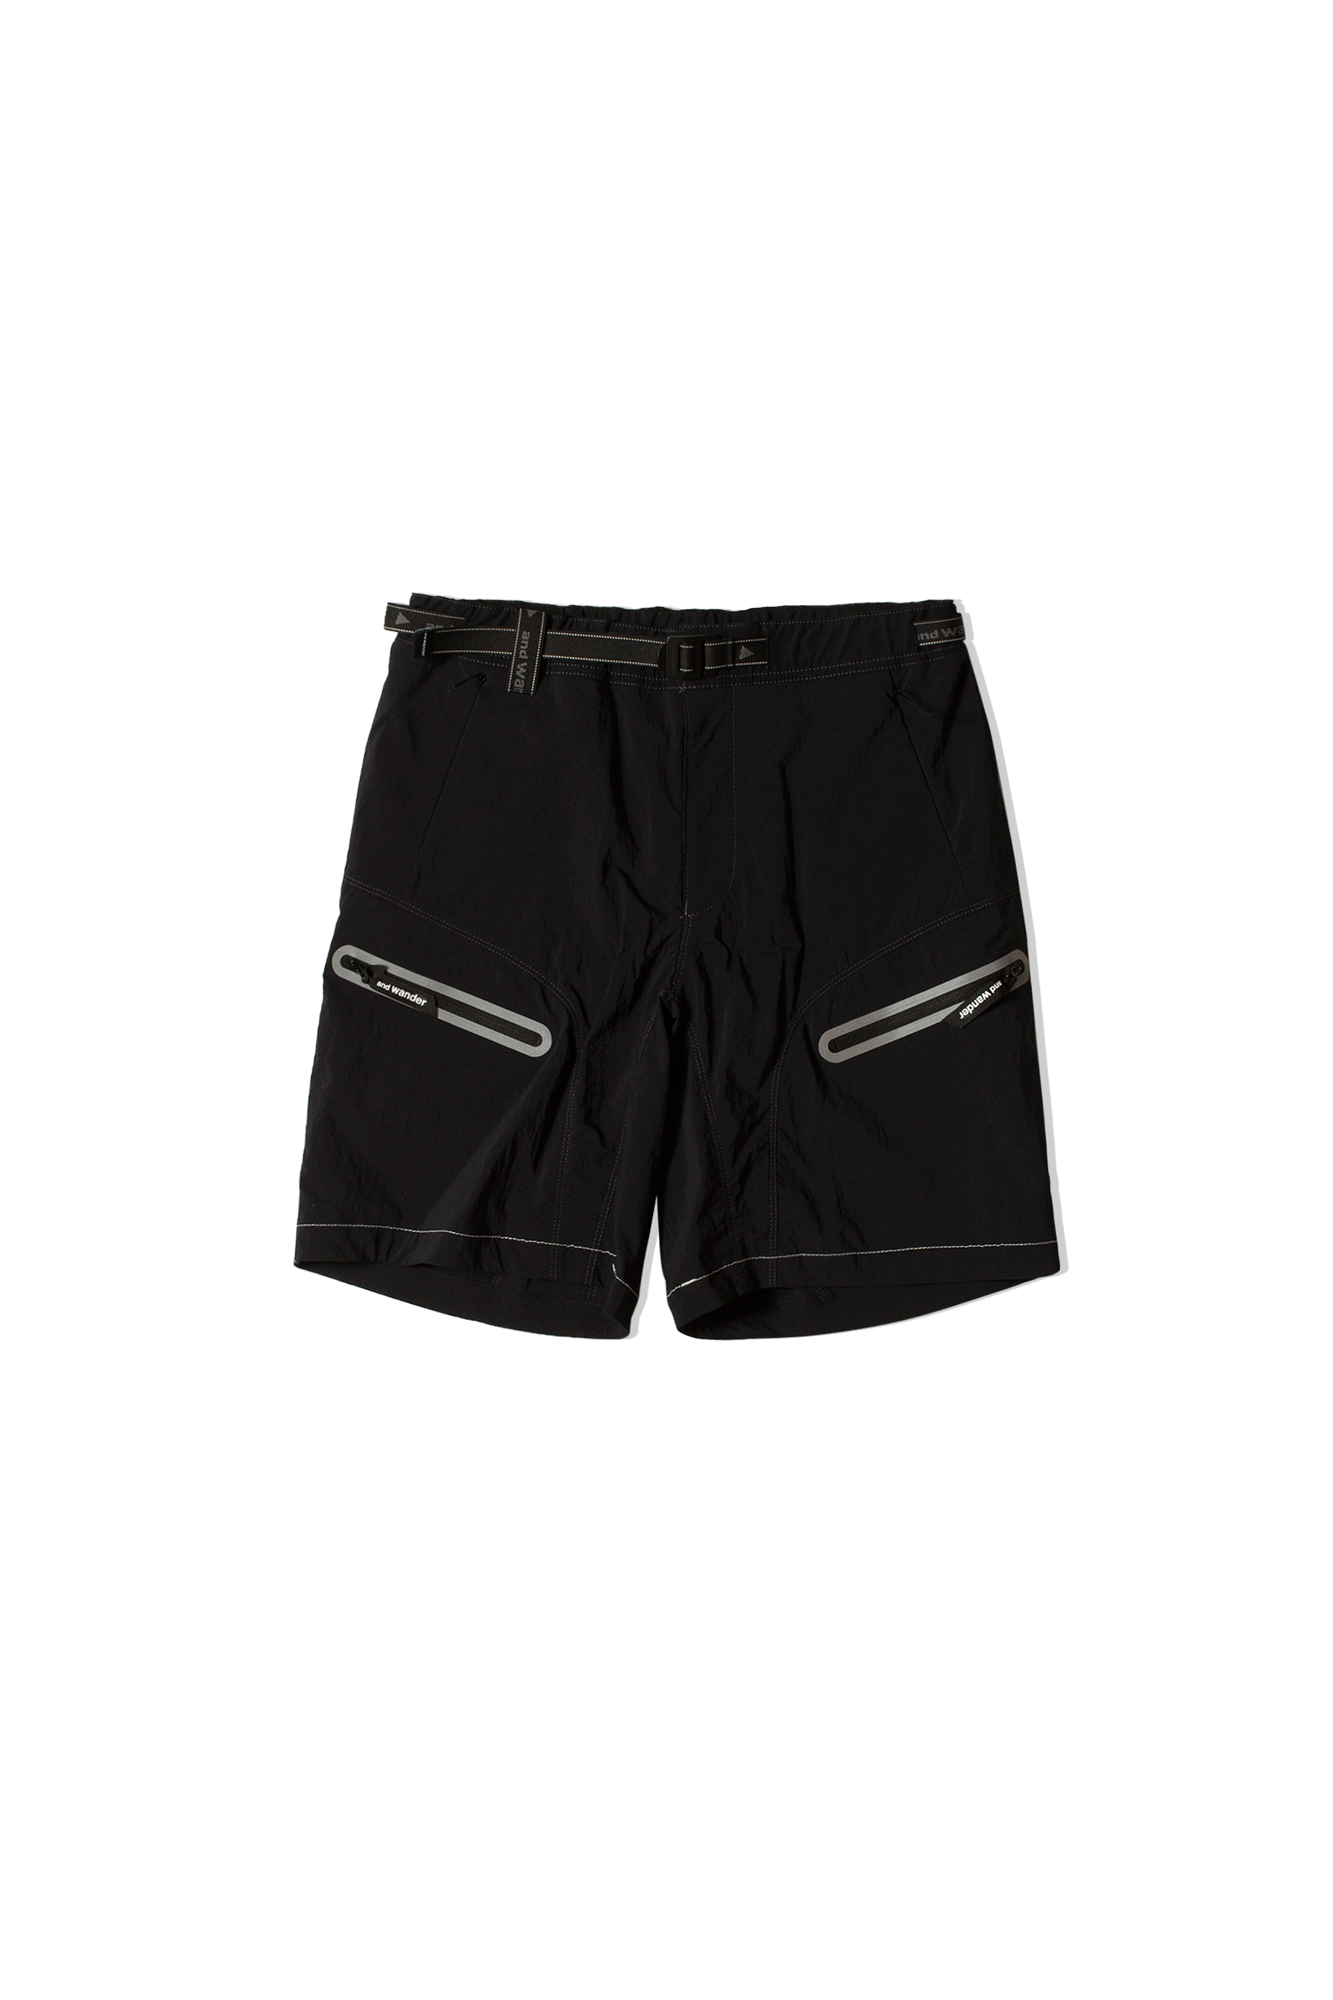 And Wander Shorts Light Hike Short Pants Black 5741152046#000#010#3 - One Block Down